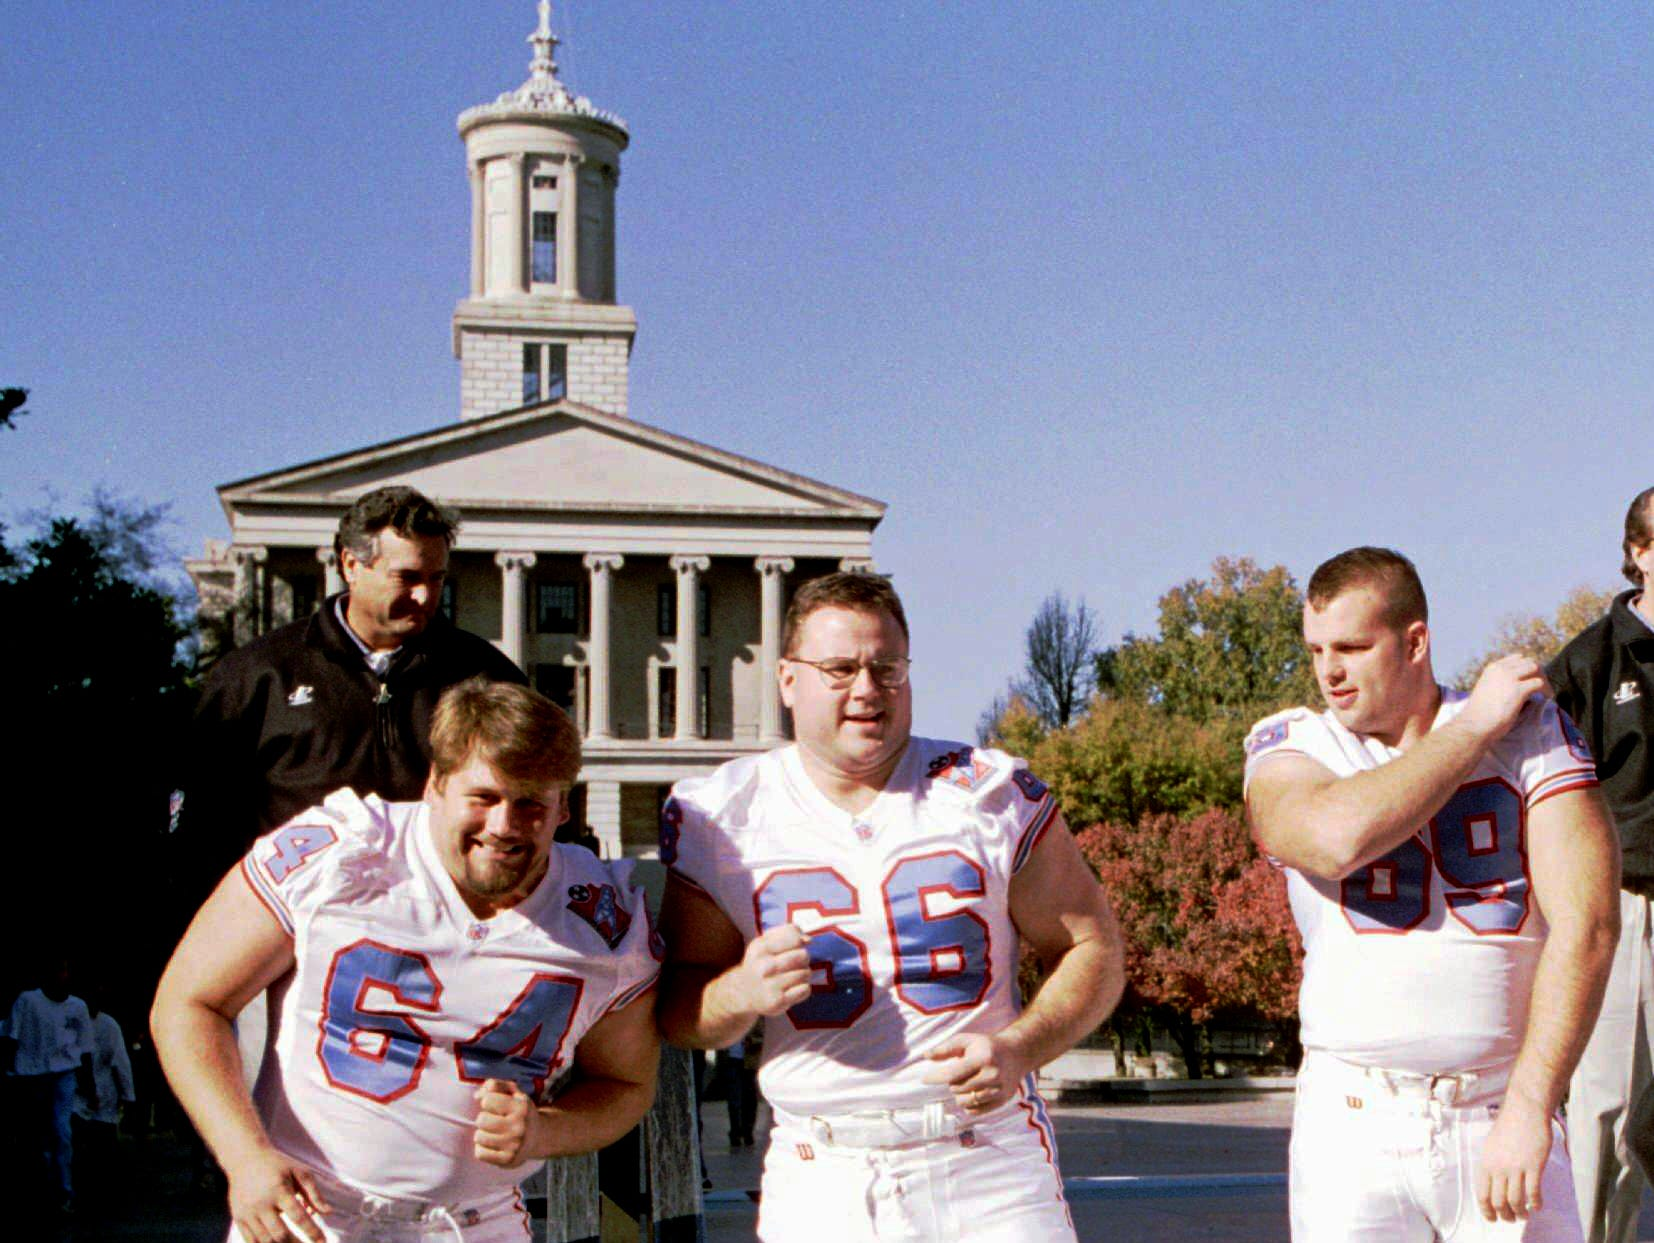 Tennessee Oilers players Erik Norgard (64) and Jason Layman (66) joke around as Jon Runyan (69) looks on before they line up for a team photo in front of the Tennessee Capitol Nov. 17, 1997 in Nashville. Wide receivers coach Alan Lowry stands behind them.